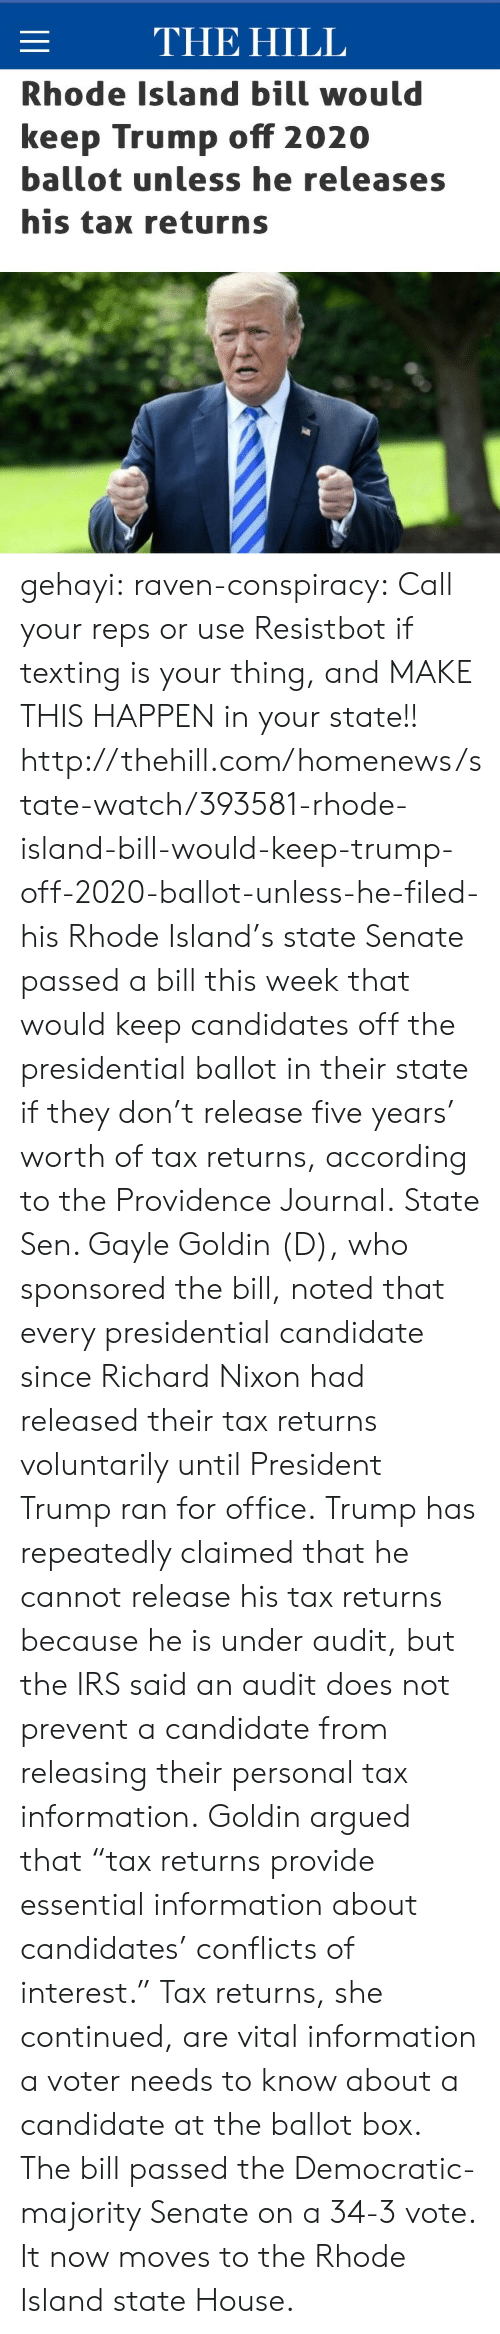 "Rhode Island: THE HILL  Rhode Island bill would  keep Trump off 2020  ballot unless he releases  his tax returns gehayi:  raven-conspiracy:  Call your reps or use Resistbot if texting is your thing, and MAKE THIS HAPPEN in your state!!  http://thehill.com/homenews/state-watch/393581-rhode-island-bill-would-keep-trump-off-2020-ballot-unless-he-filed-his   Rhode Island's state Senate passed a bill this week that would keep candidates off the presidential ballot in their state if they don't release five years' worth of tax returns, according to the Providence Journal. State Sen. Gayle Goldin (D), who sponsored the bill, noted that every presidential candidate since Richard Nixon had released their tax returns voluntarily until President Trump ran for office. Trump has repeatedly claimed that he cannot release his tax returns because he is under audit, but the IRS said an audit does not prevent a candidate from releasing their personal tax information. Goldin argued that ""tax returns provide essential information about candidates' conflicts of interest."" Tax returns, she continued, are vital information a voter needs to know about a candidate at the ballot box. The bill passed the Democratic-majority Senate on a 34-3 vote. It now moves to the Rhode Island state House."